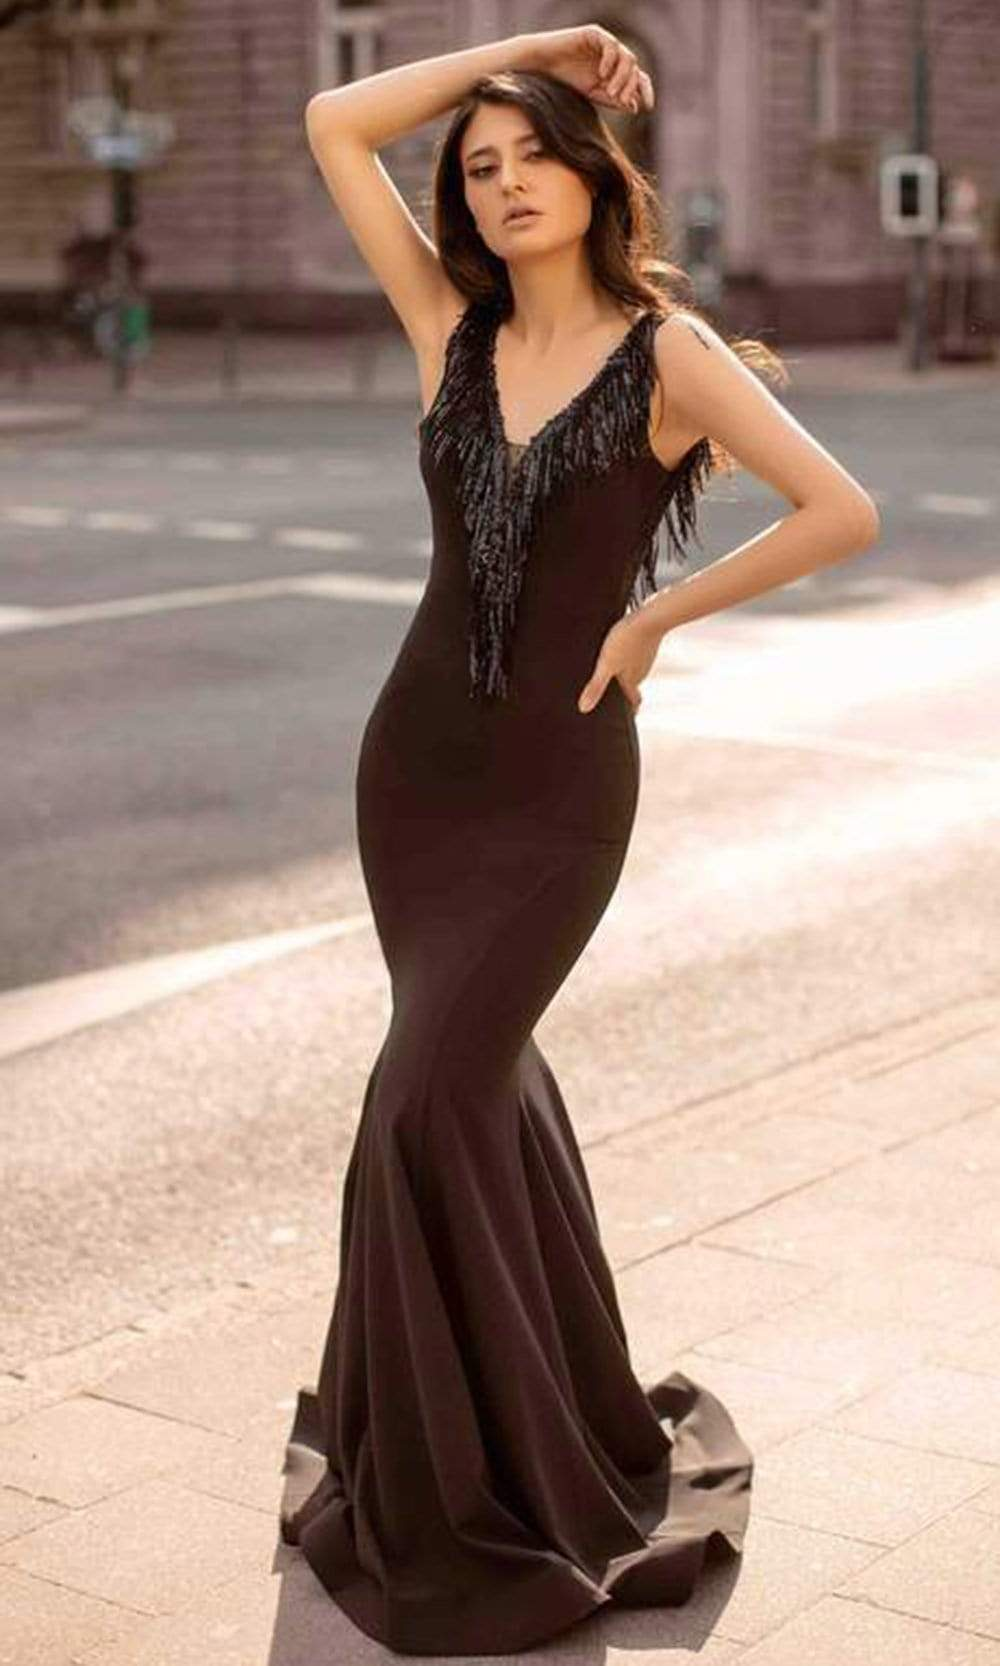 Chic and Holland - AN3124 V Neck and V Back Dangling Long Dress from Chic and Holland